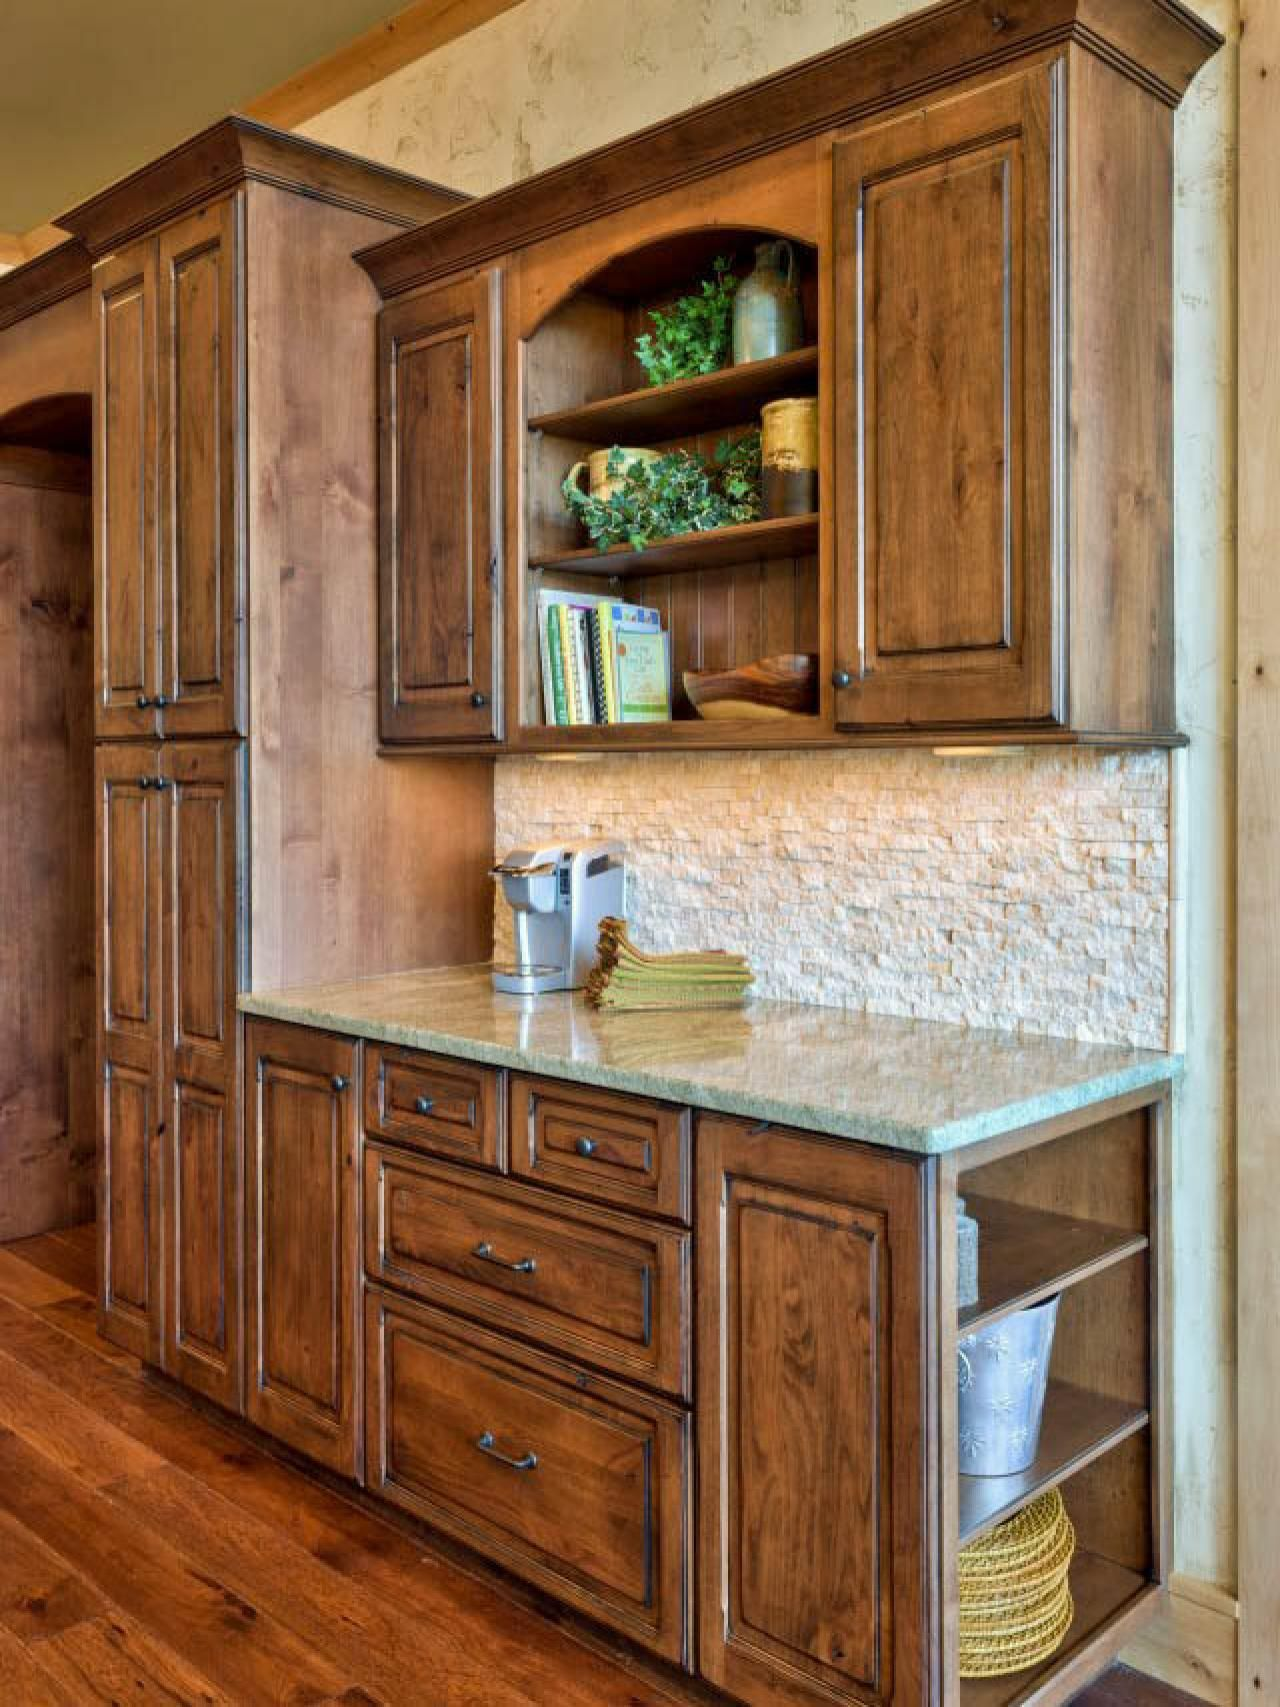 rustic stone kitchen with country appeal muebles On gabinetes de cocina rusticos